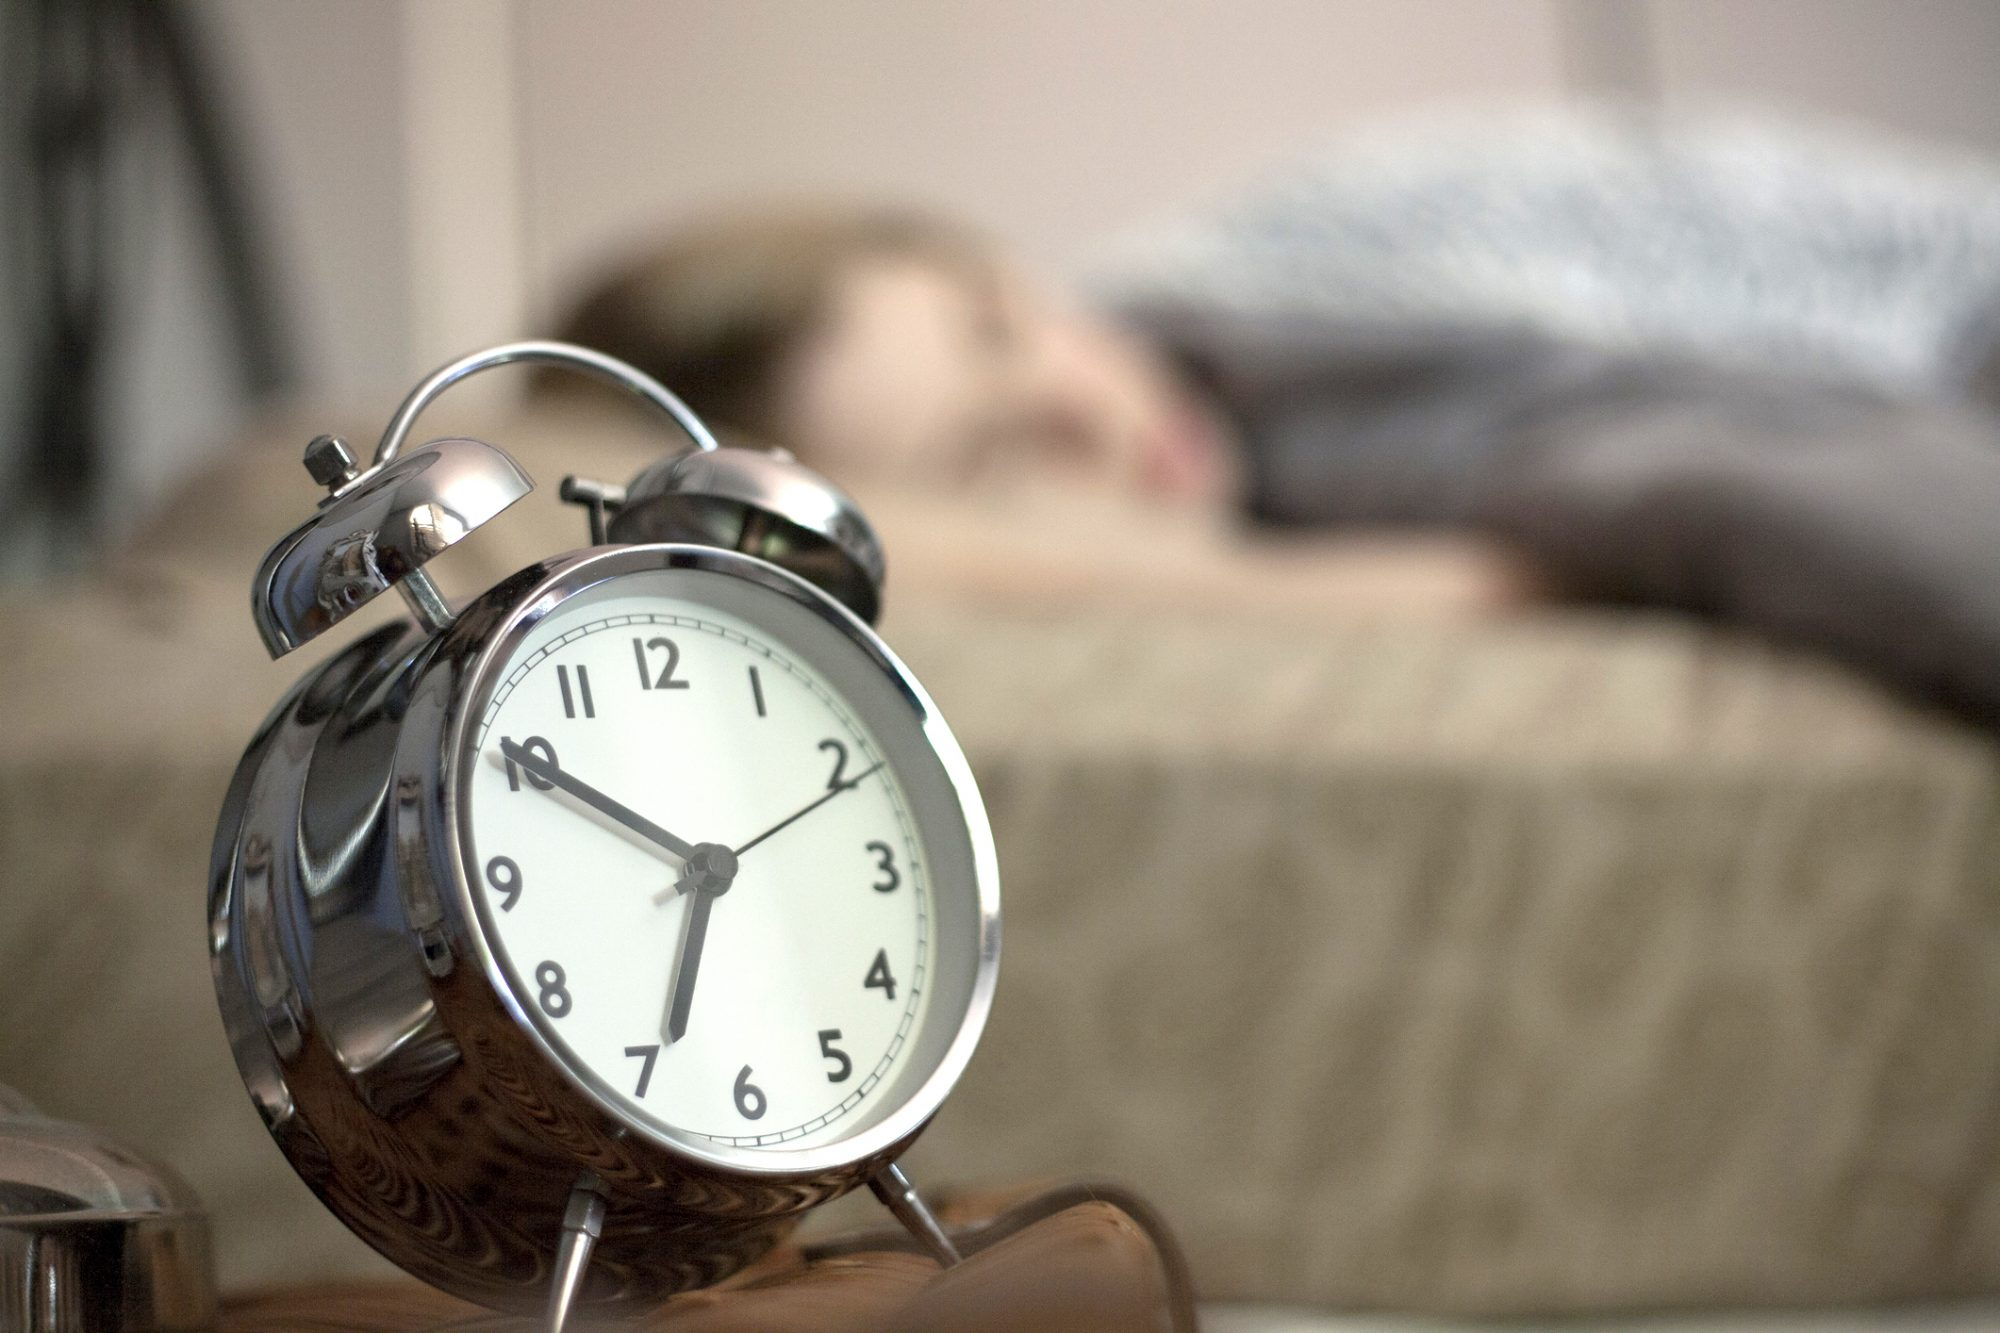 15 Alarm Clocks for Heavy Sleepers